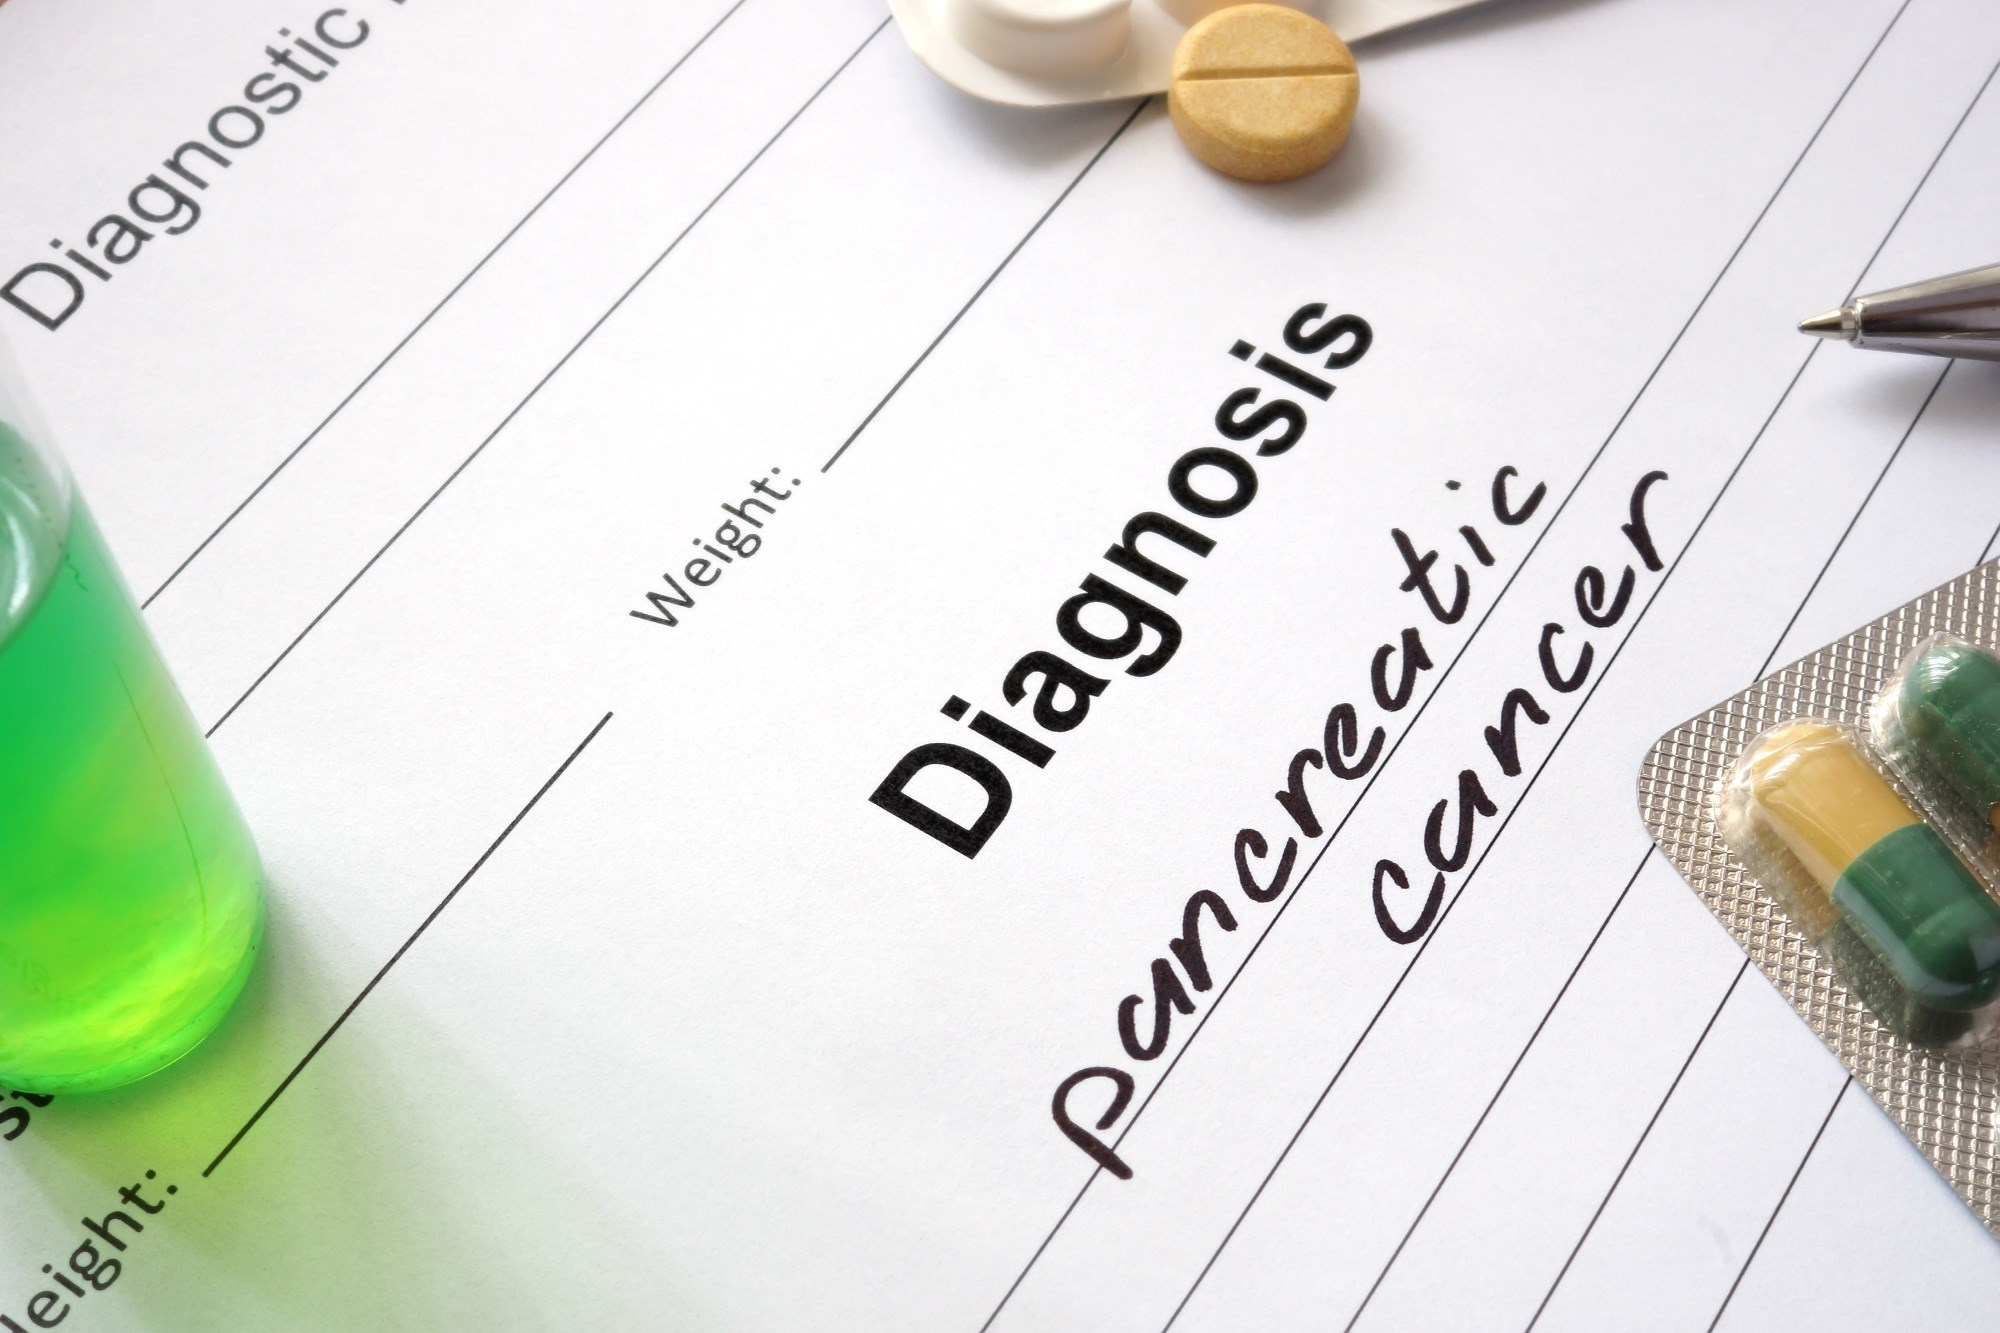 Relacorilant Gets Orphan Drug Designation for Pancreatic Cancer